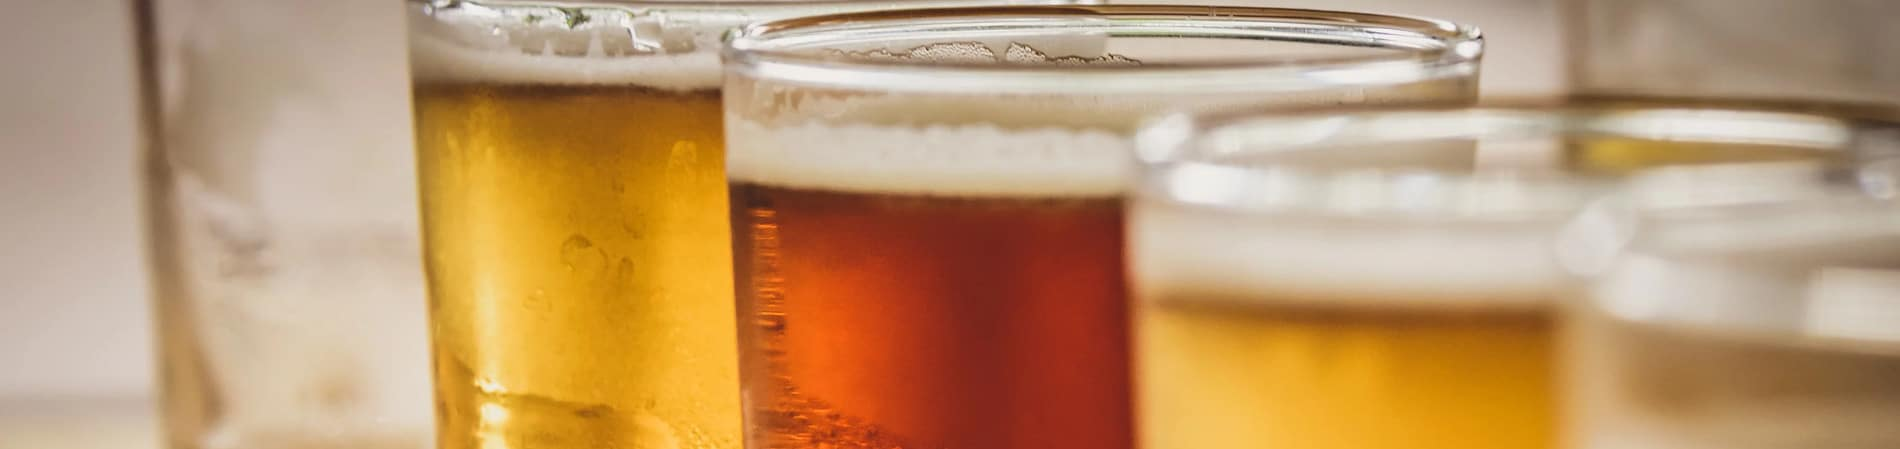 Research shows natural ingredients in beer matter to 88% of consumers